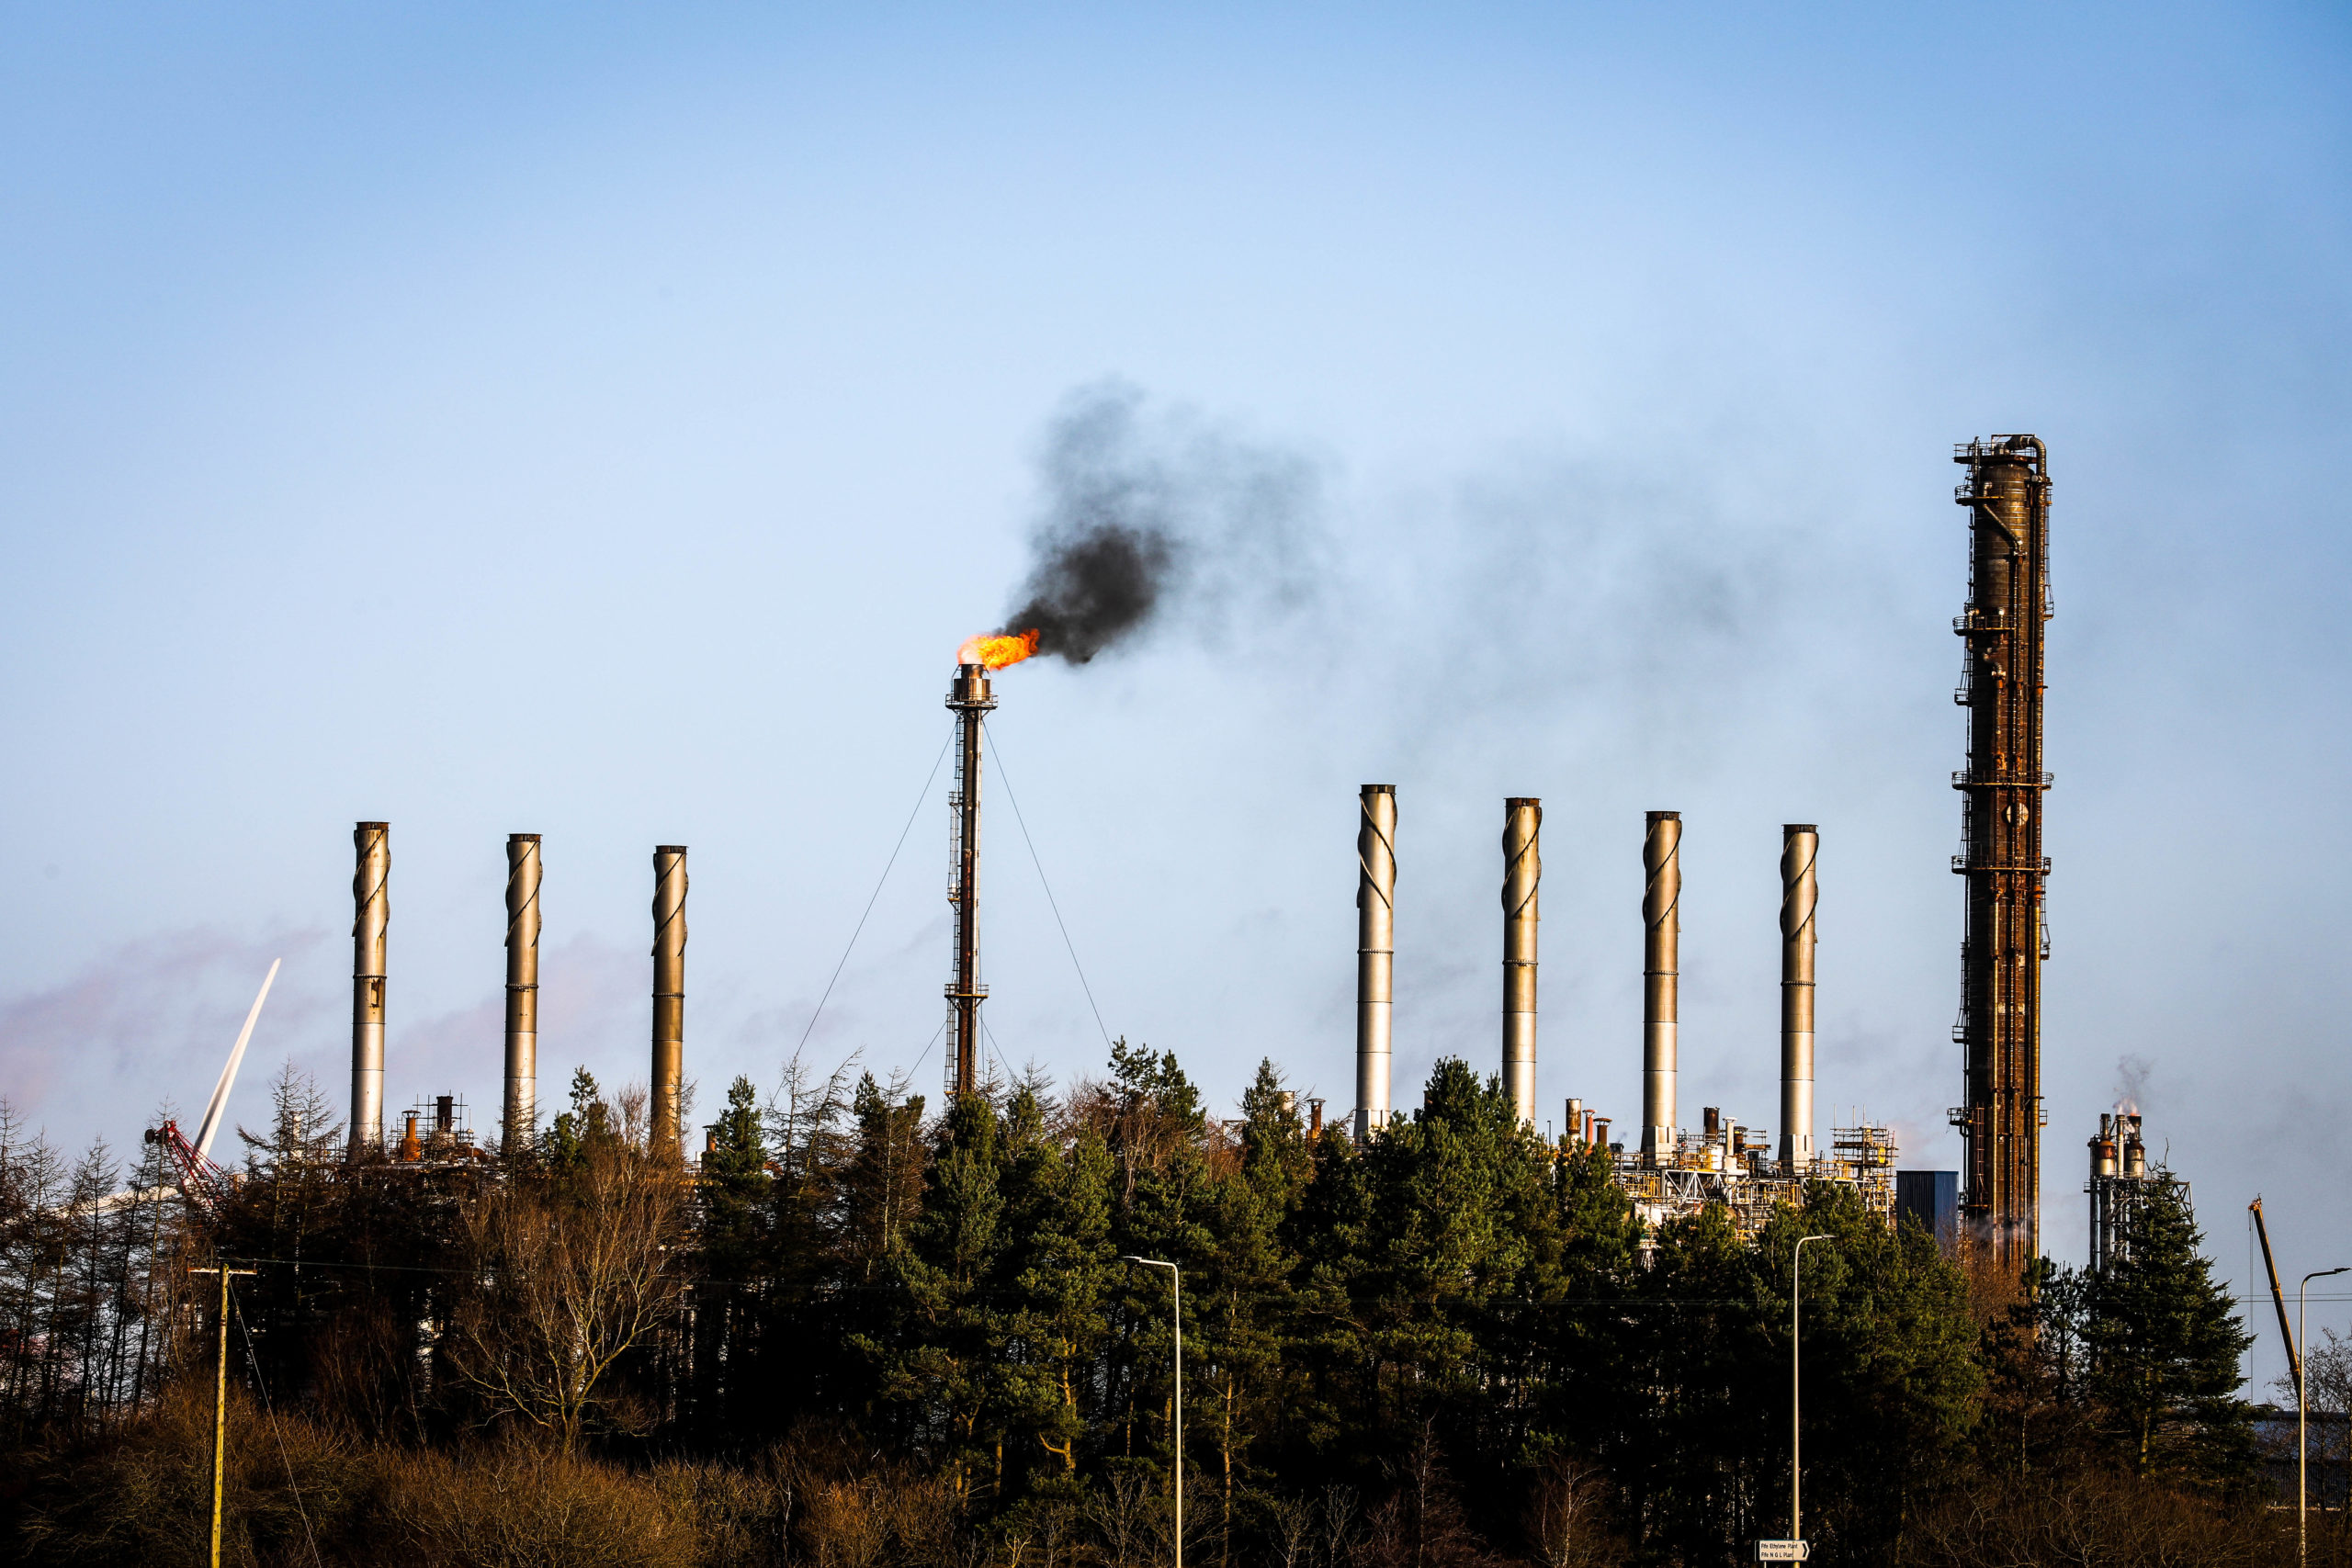 Flaring at the Exxon / Mossmorran Petrochemical plant near Cowdenbeath.